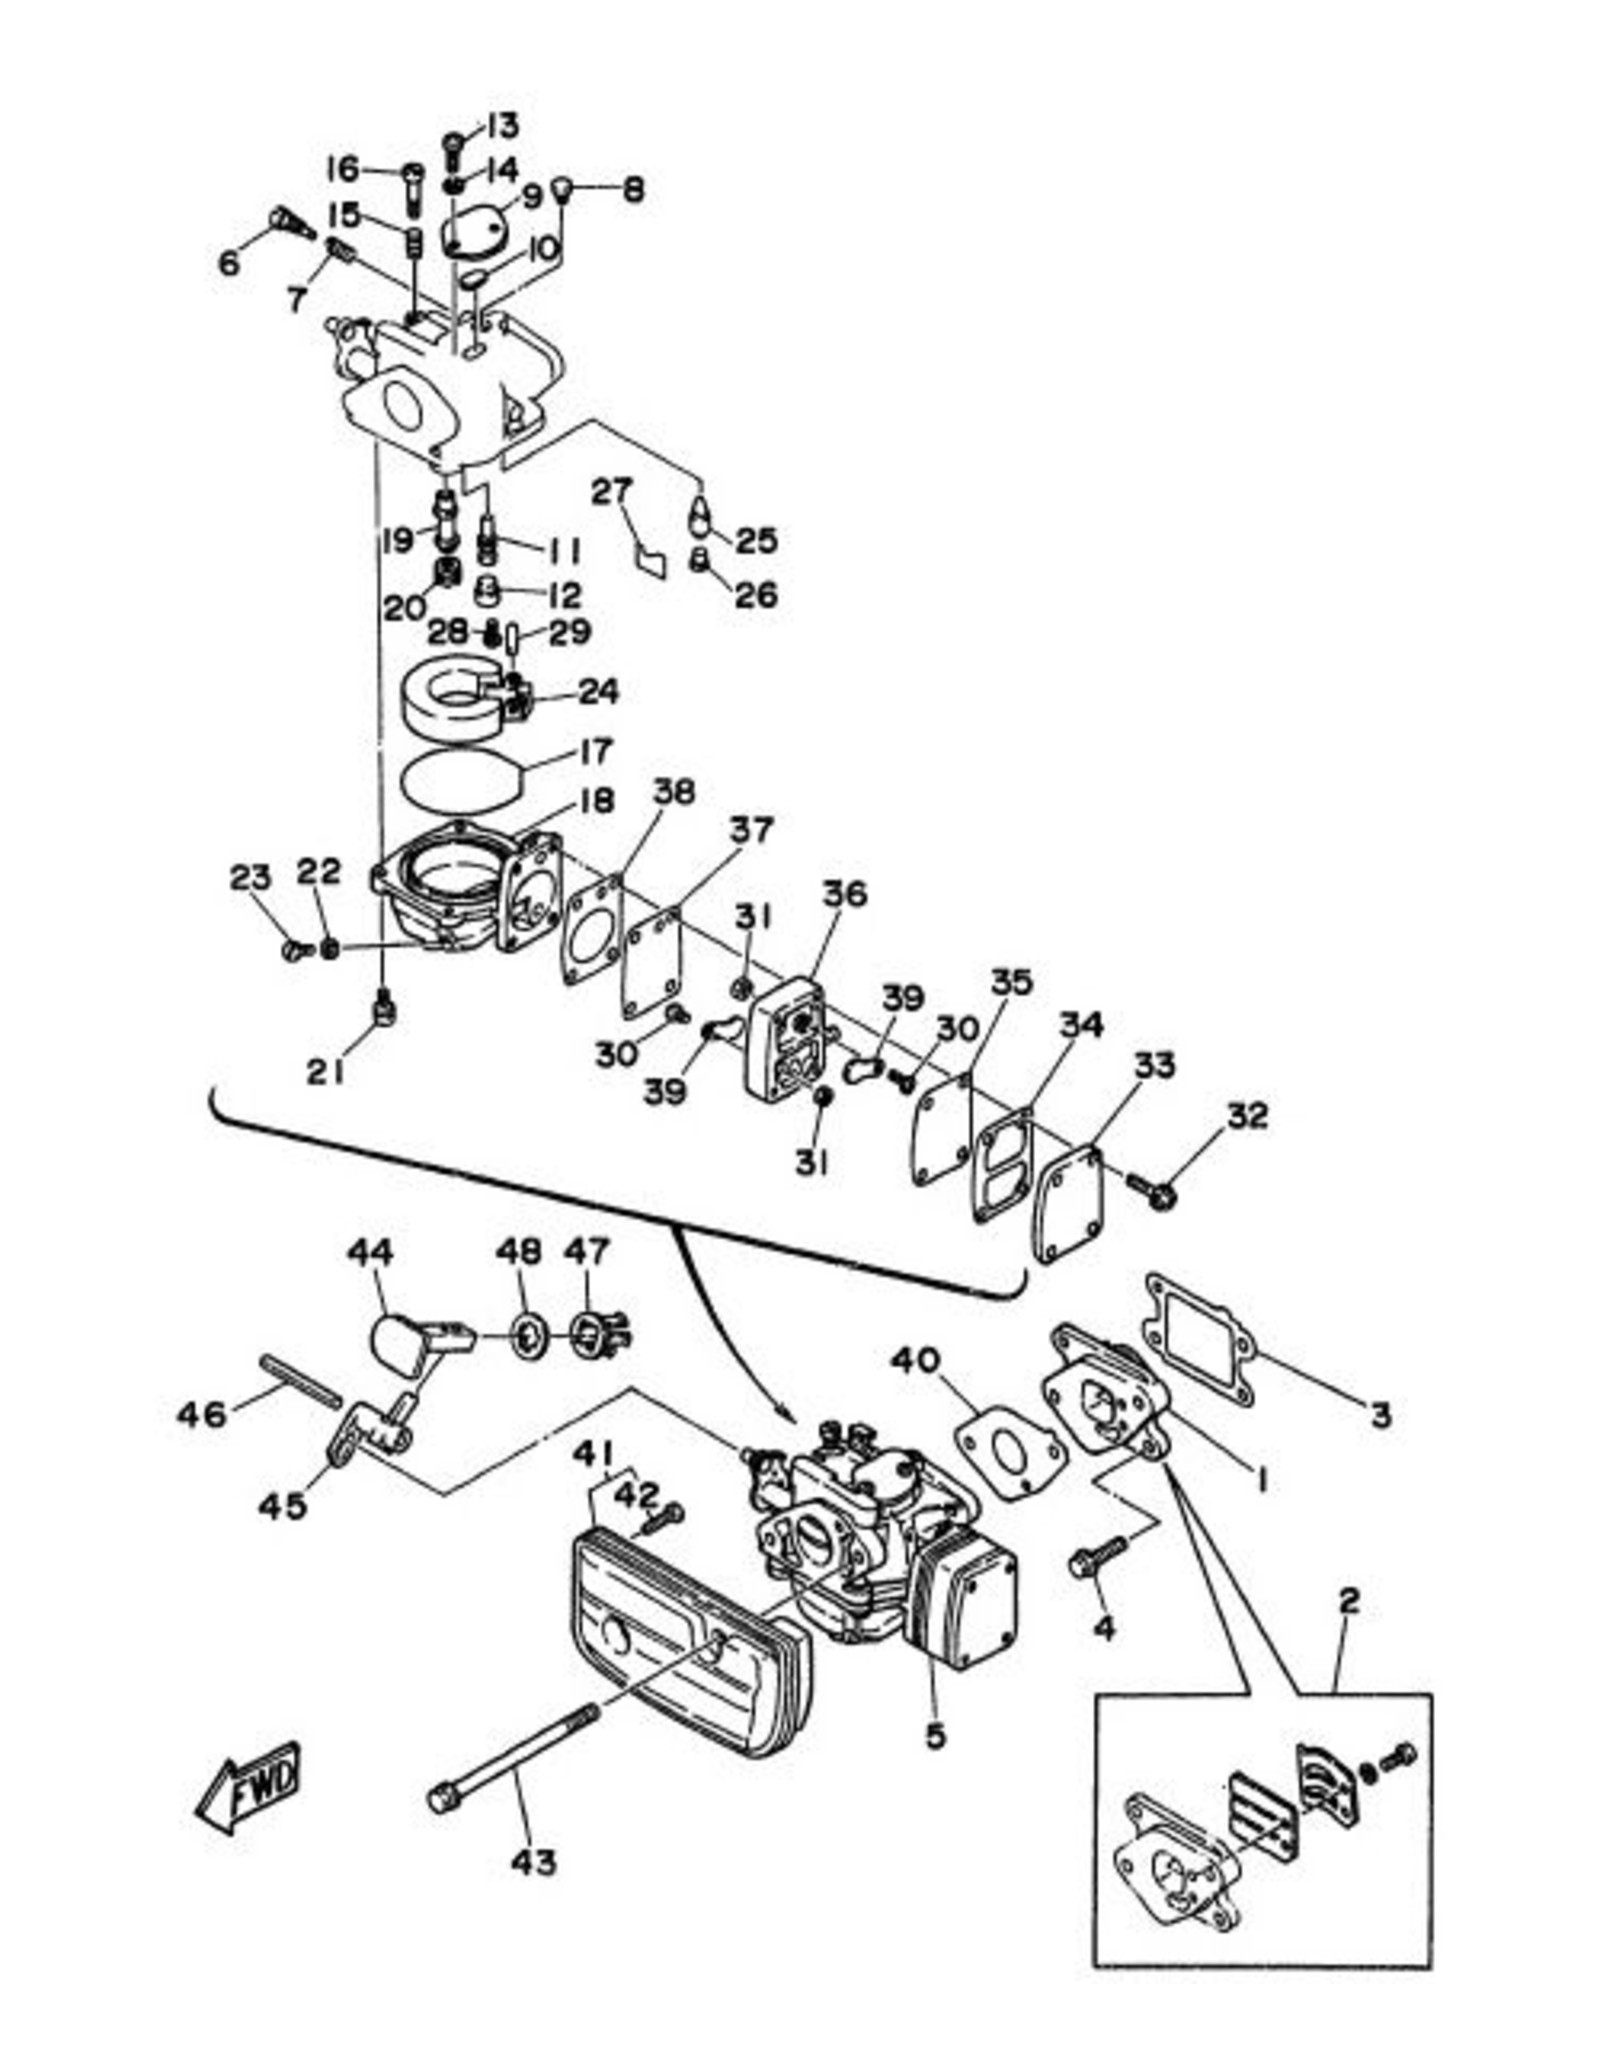 15. SPRING COIL (663) (CARB) 90501-10326